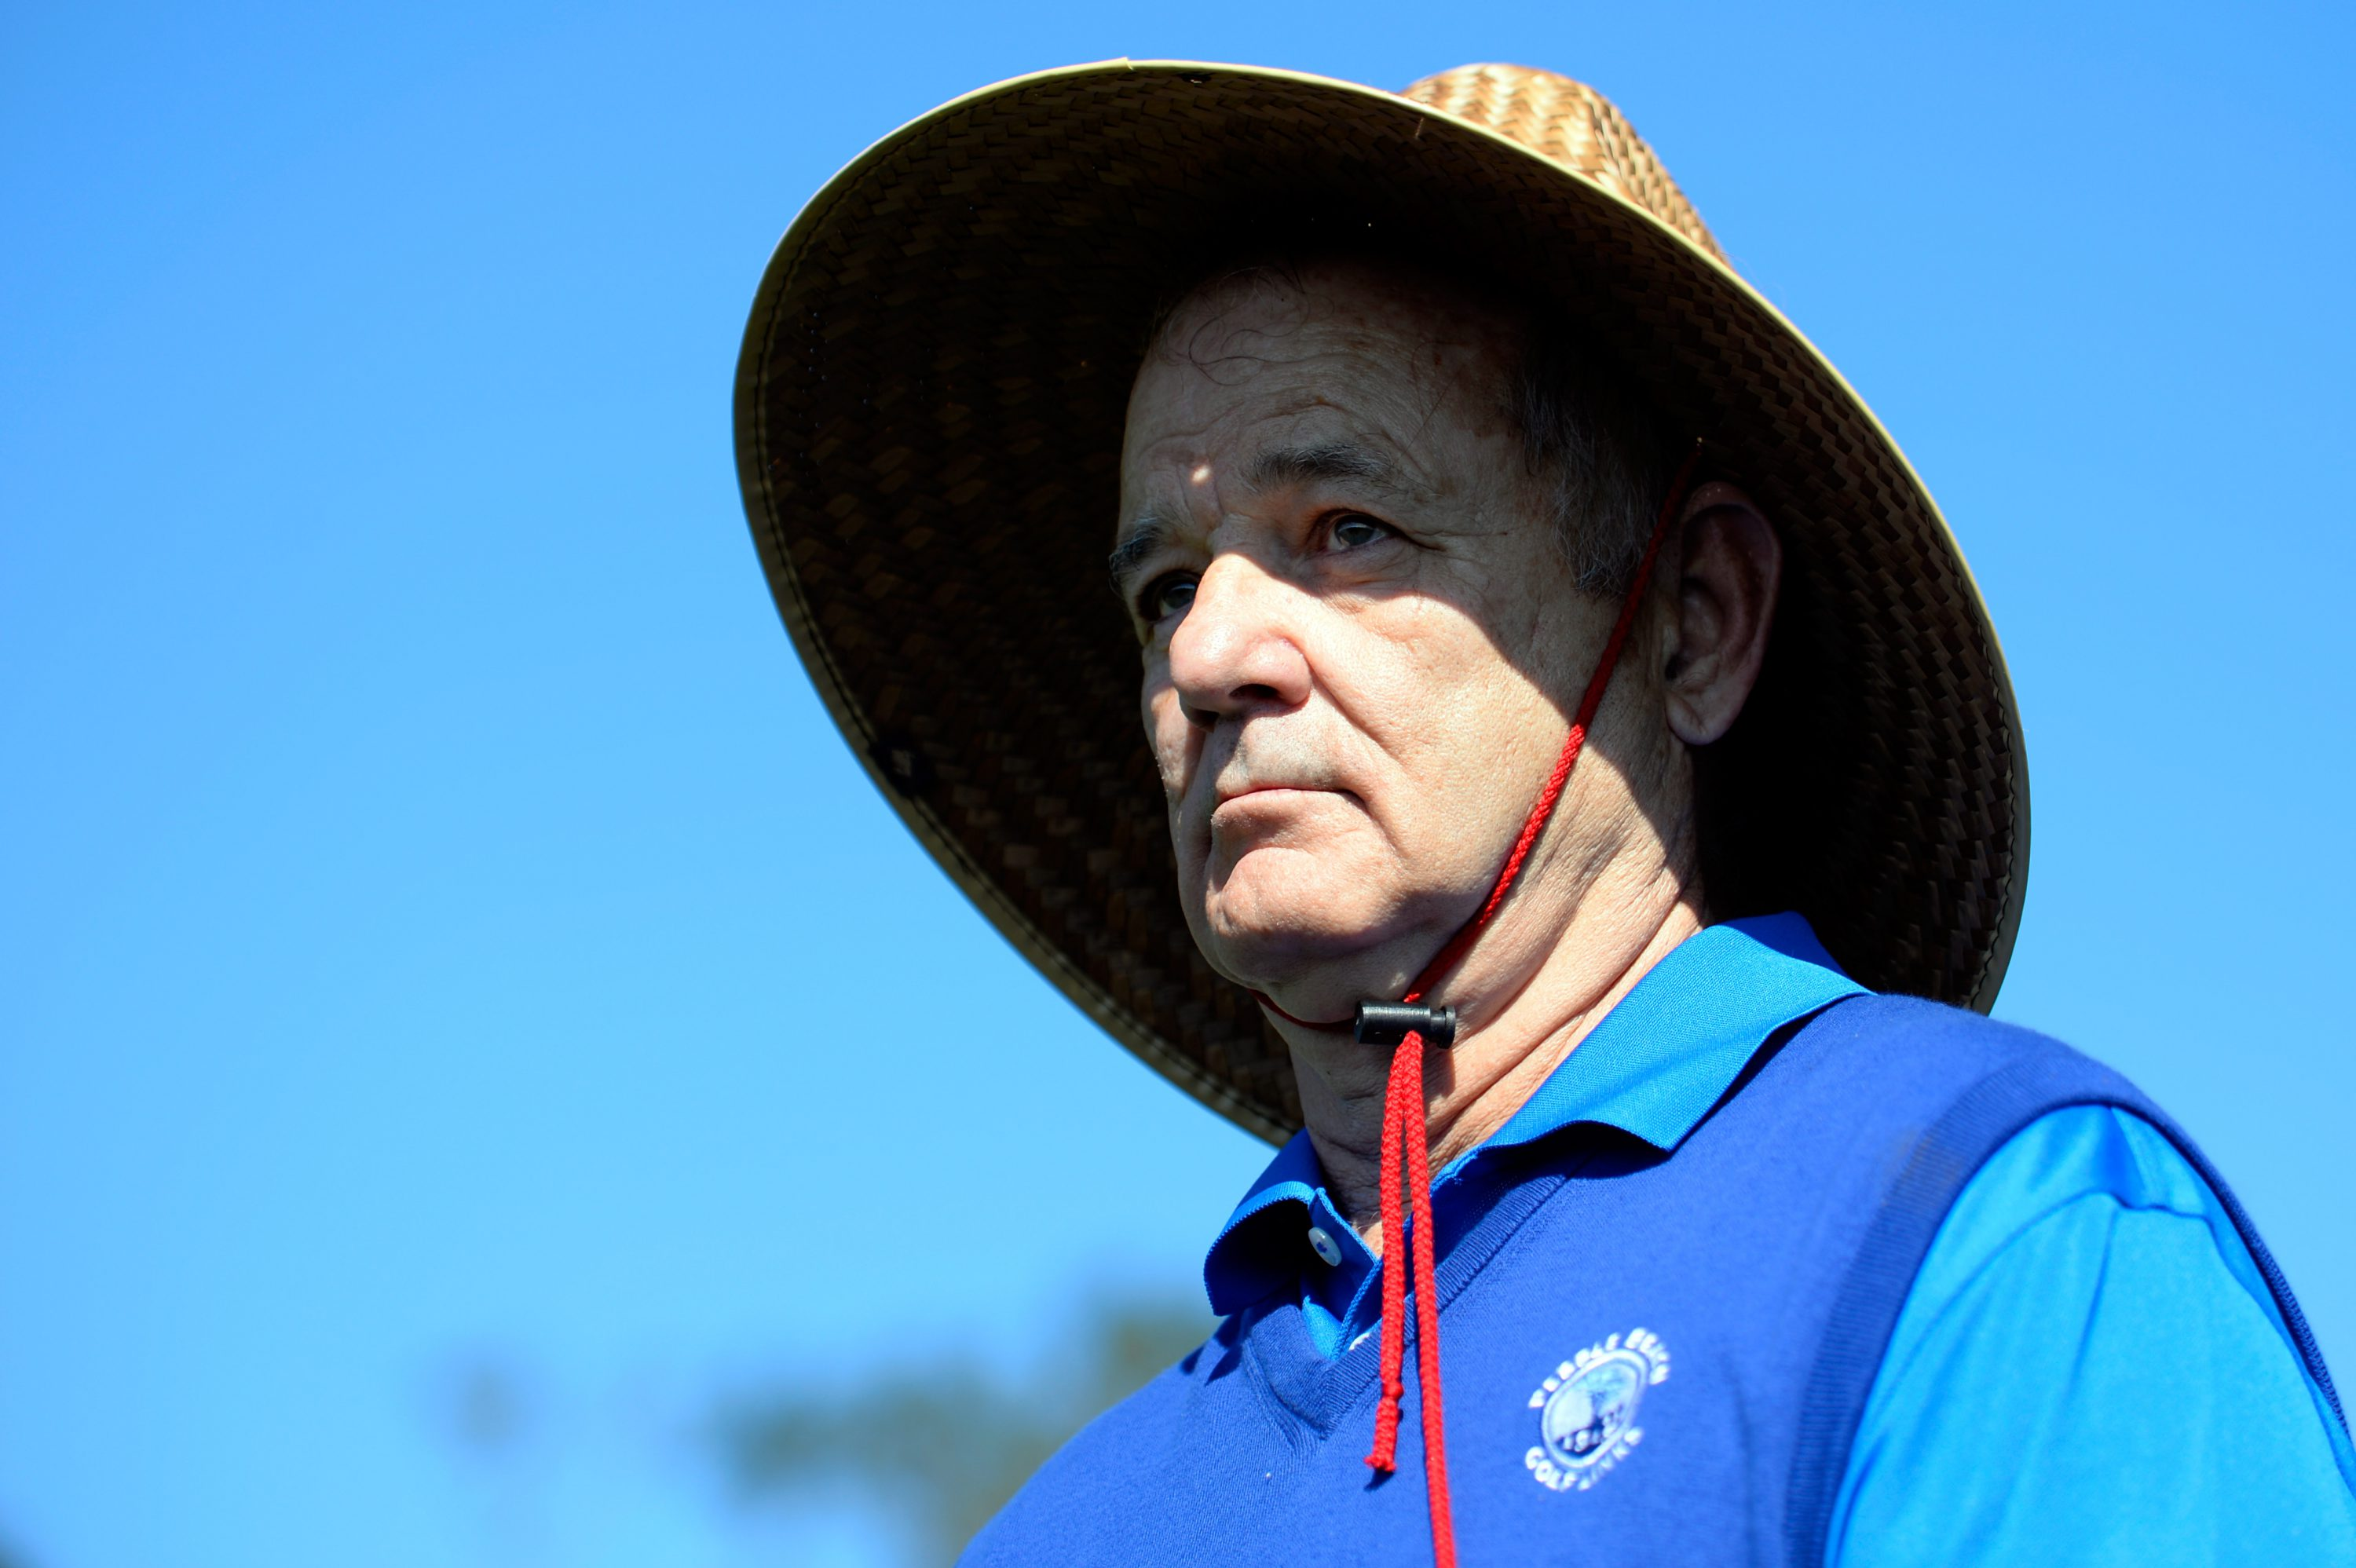 Bill Murray looks on at the 14th tee box during round three of the AT&T Pebble Beach National Pro-Am at the Pebble Beach Golf Links on February 13, 2016 in Pebble Beach, California.